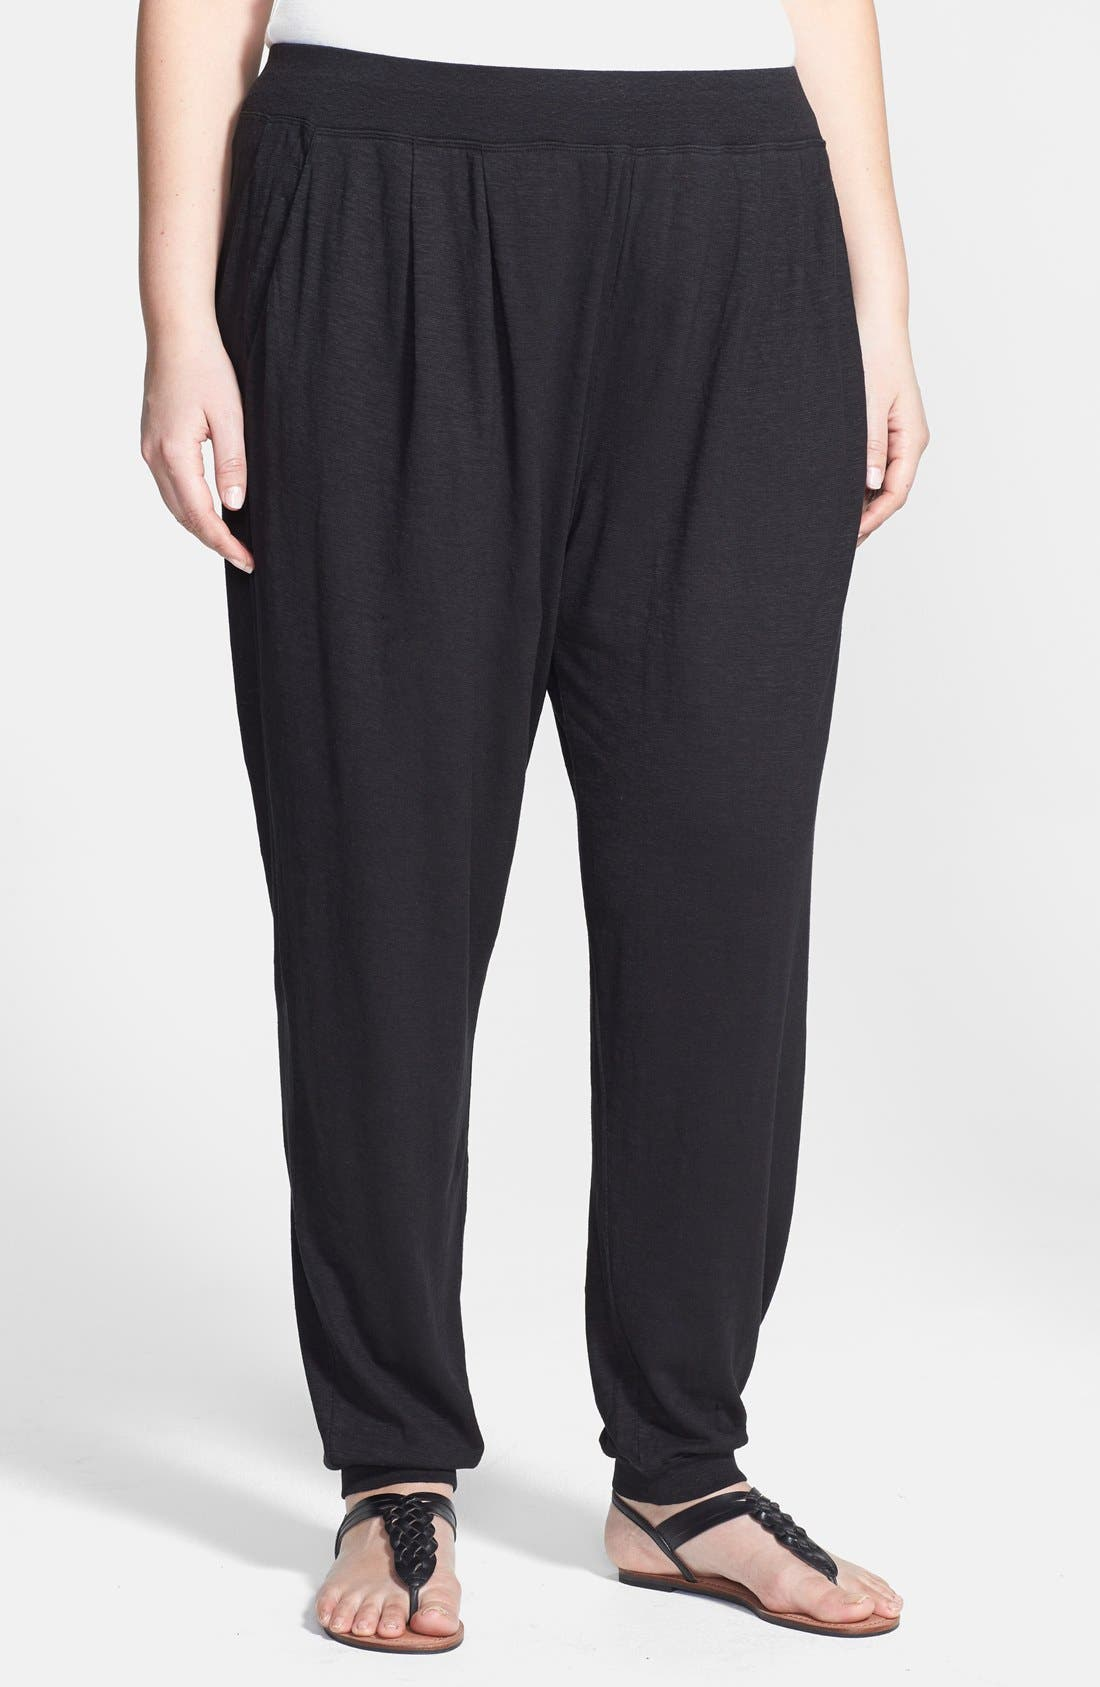 Alternate Image 1 Selected - Eileen Fisher Pleat Front Knit Ankle Pants (Plus Size)